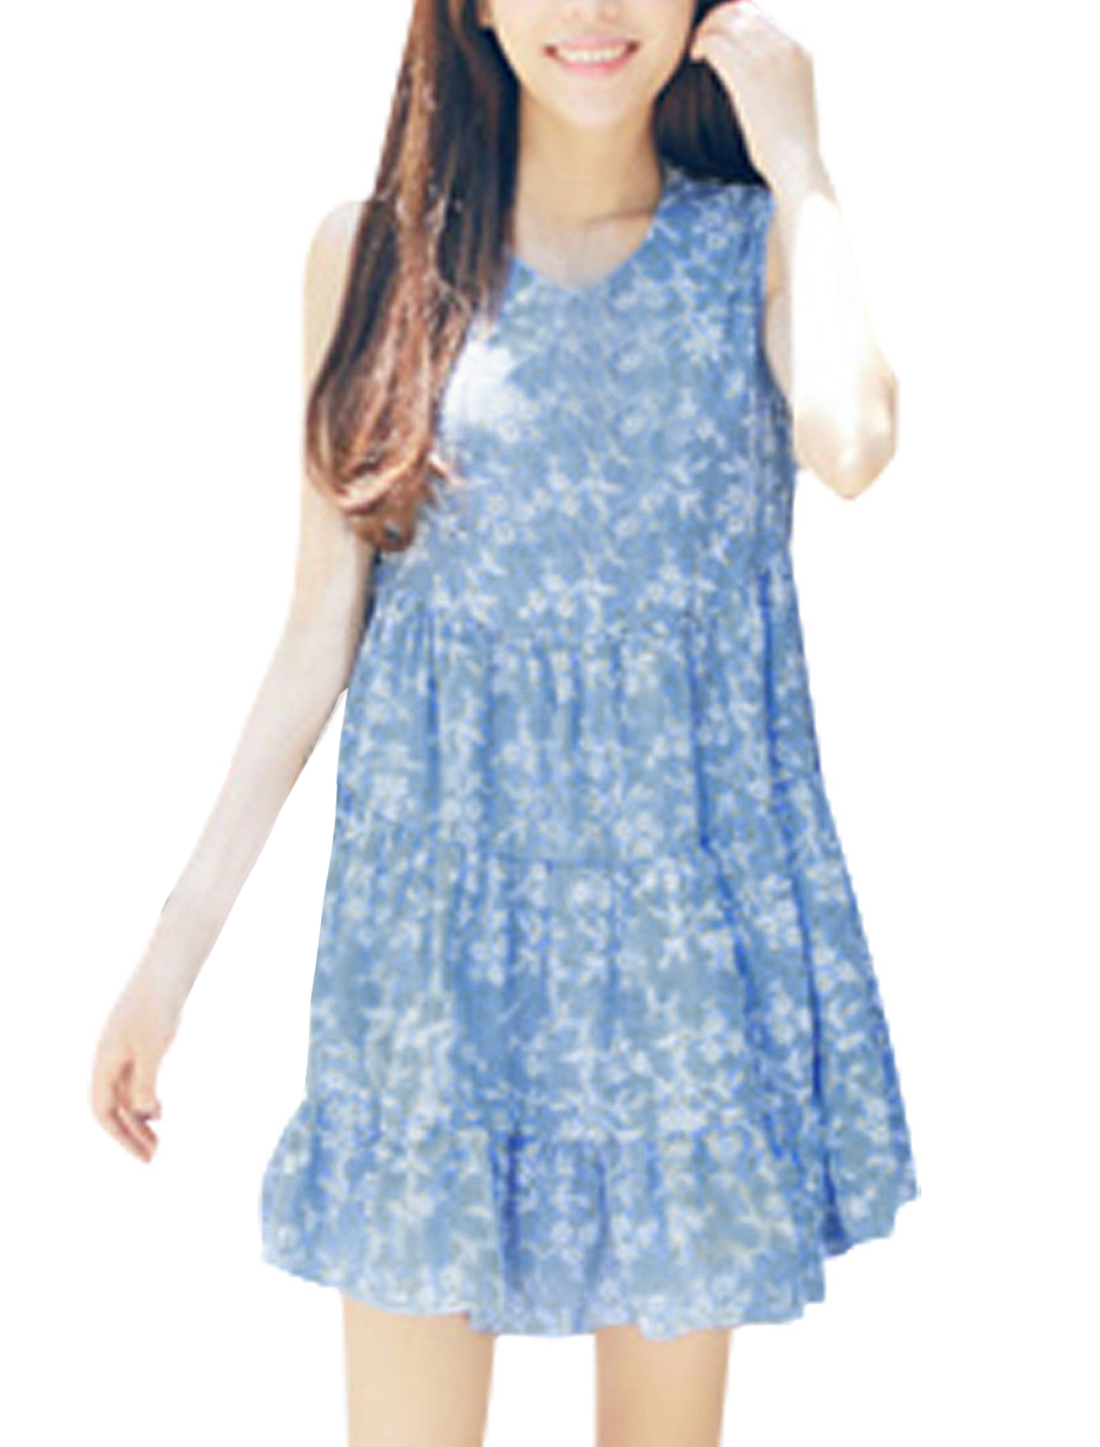 Lady Sleeveless Floral Embroidery Unlined Casual Dress Blue XS